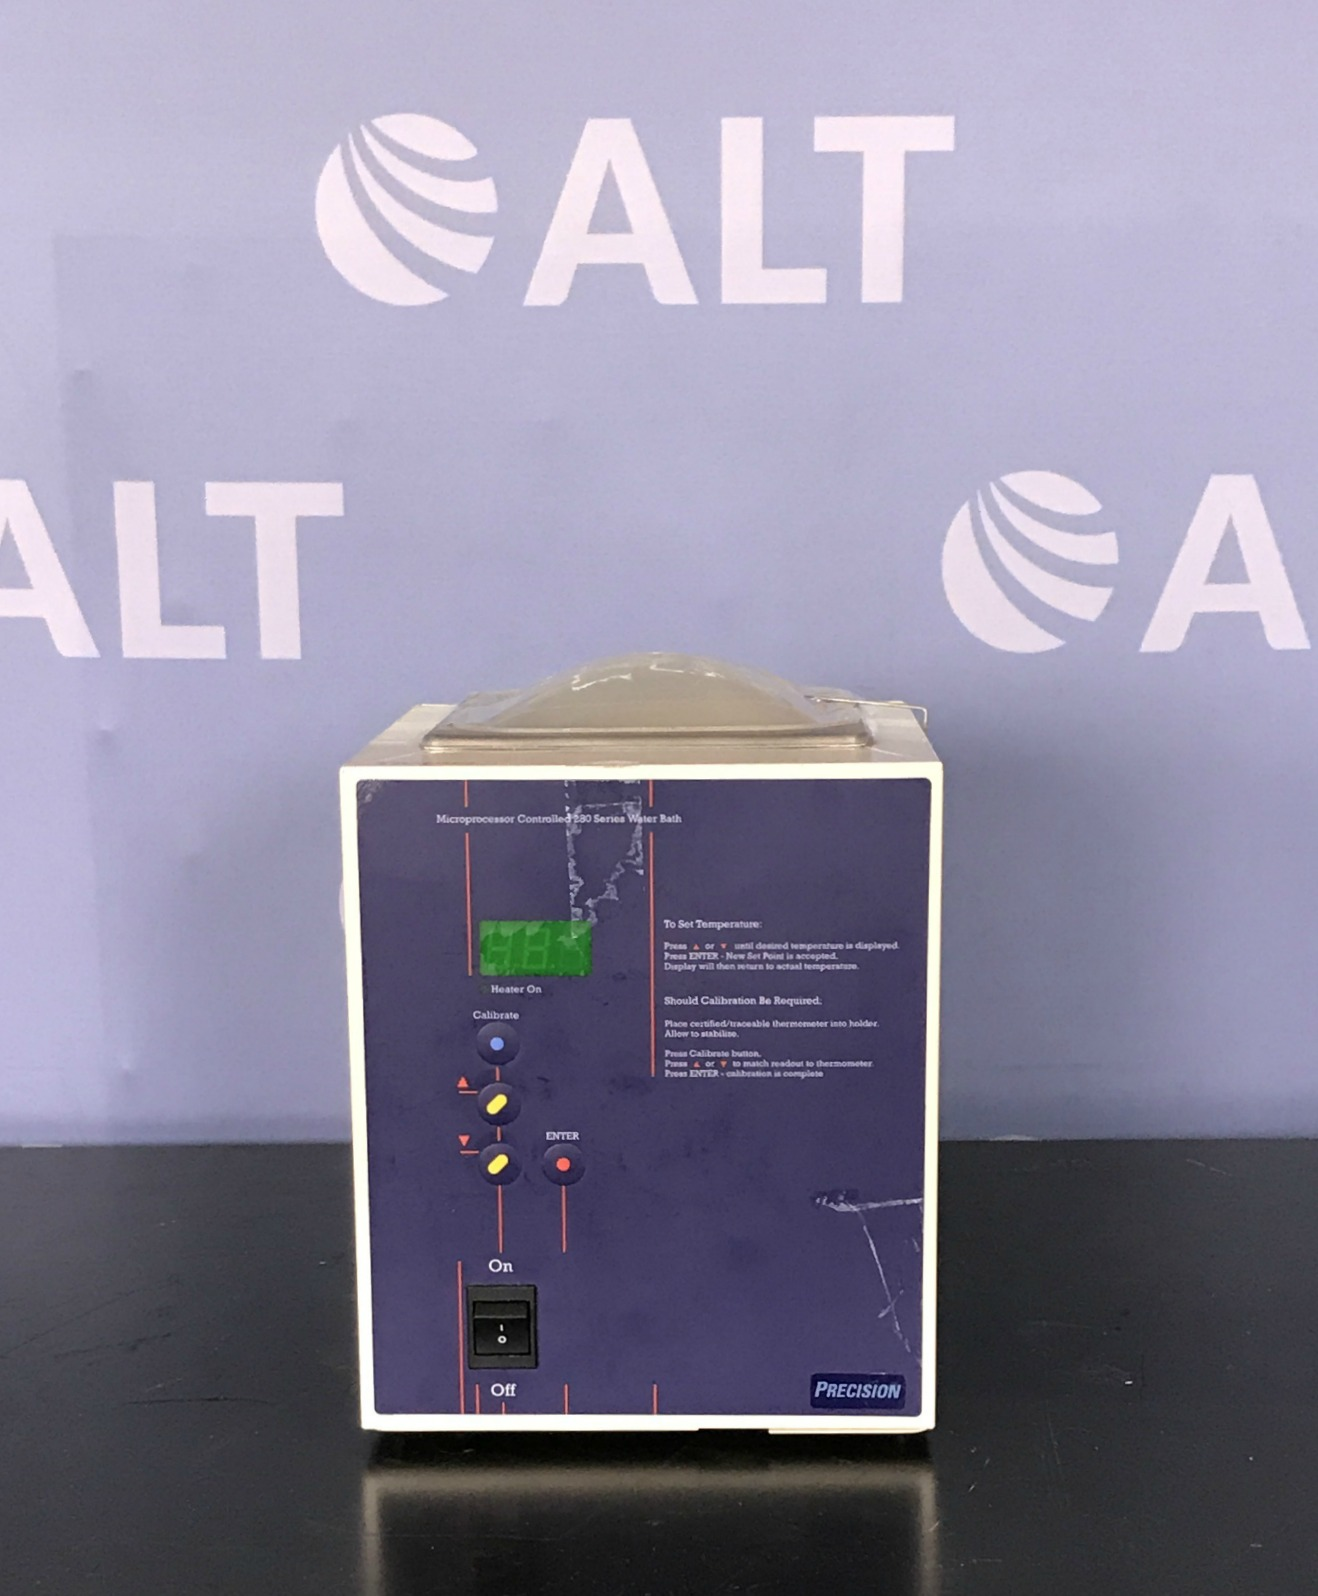 Precision Microprocessor Controlled 280 Series Water Bath, Model 281, Cat. 2829 Image